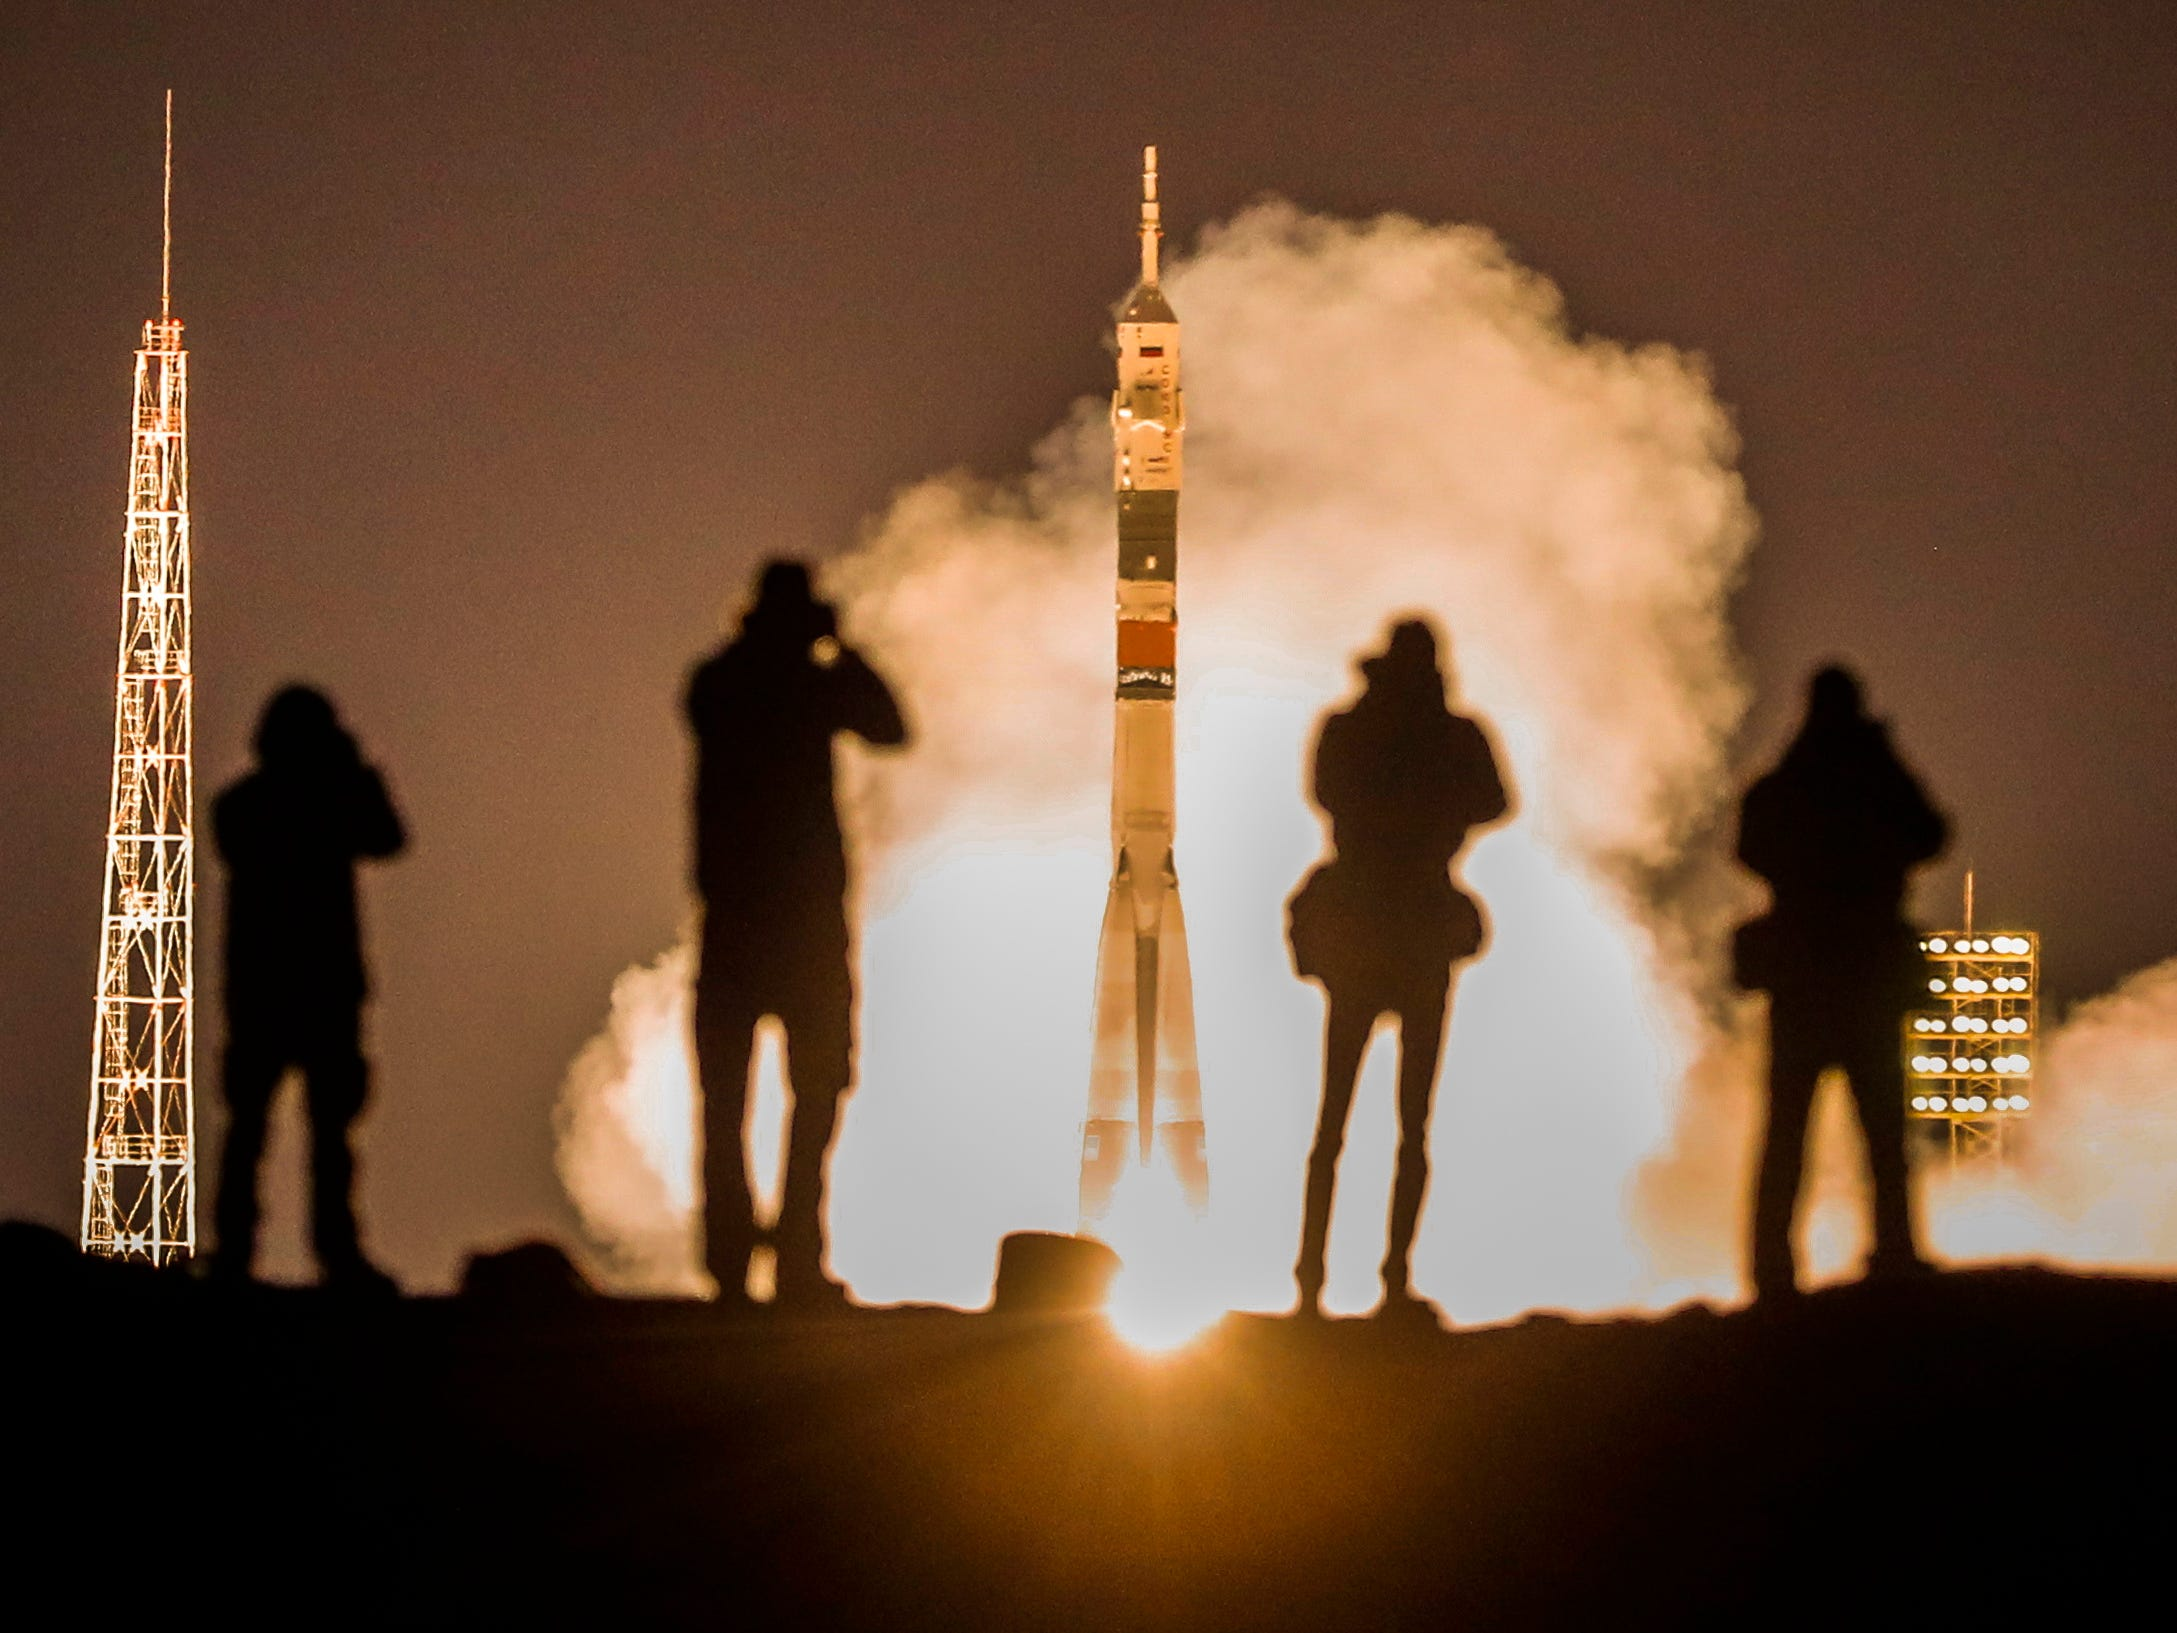 Photographers take pictures as the Soyuz MS-12 spacecraft with crew members of Expedition 59/60  Russian cosmonaut Alexey Ovchinin, NASA astronauts Christina Koch and Nick Hague lifts off from the launch pad at the Russian leased Baikonur cosmodrome, Kazakhstan on March 15, 2019.